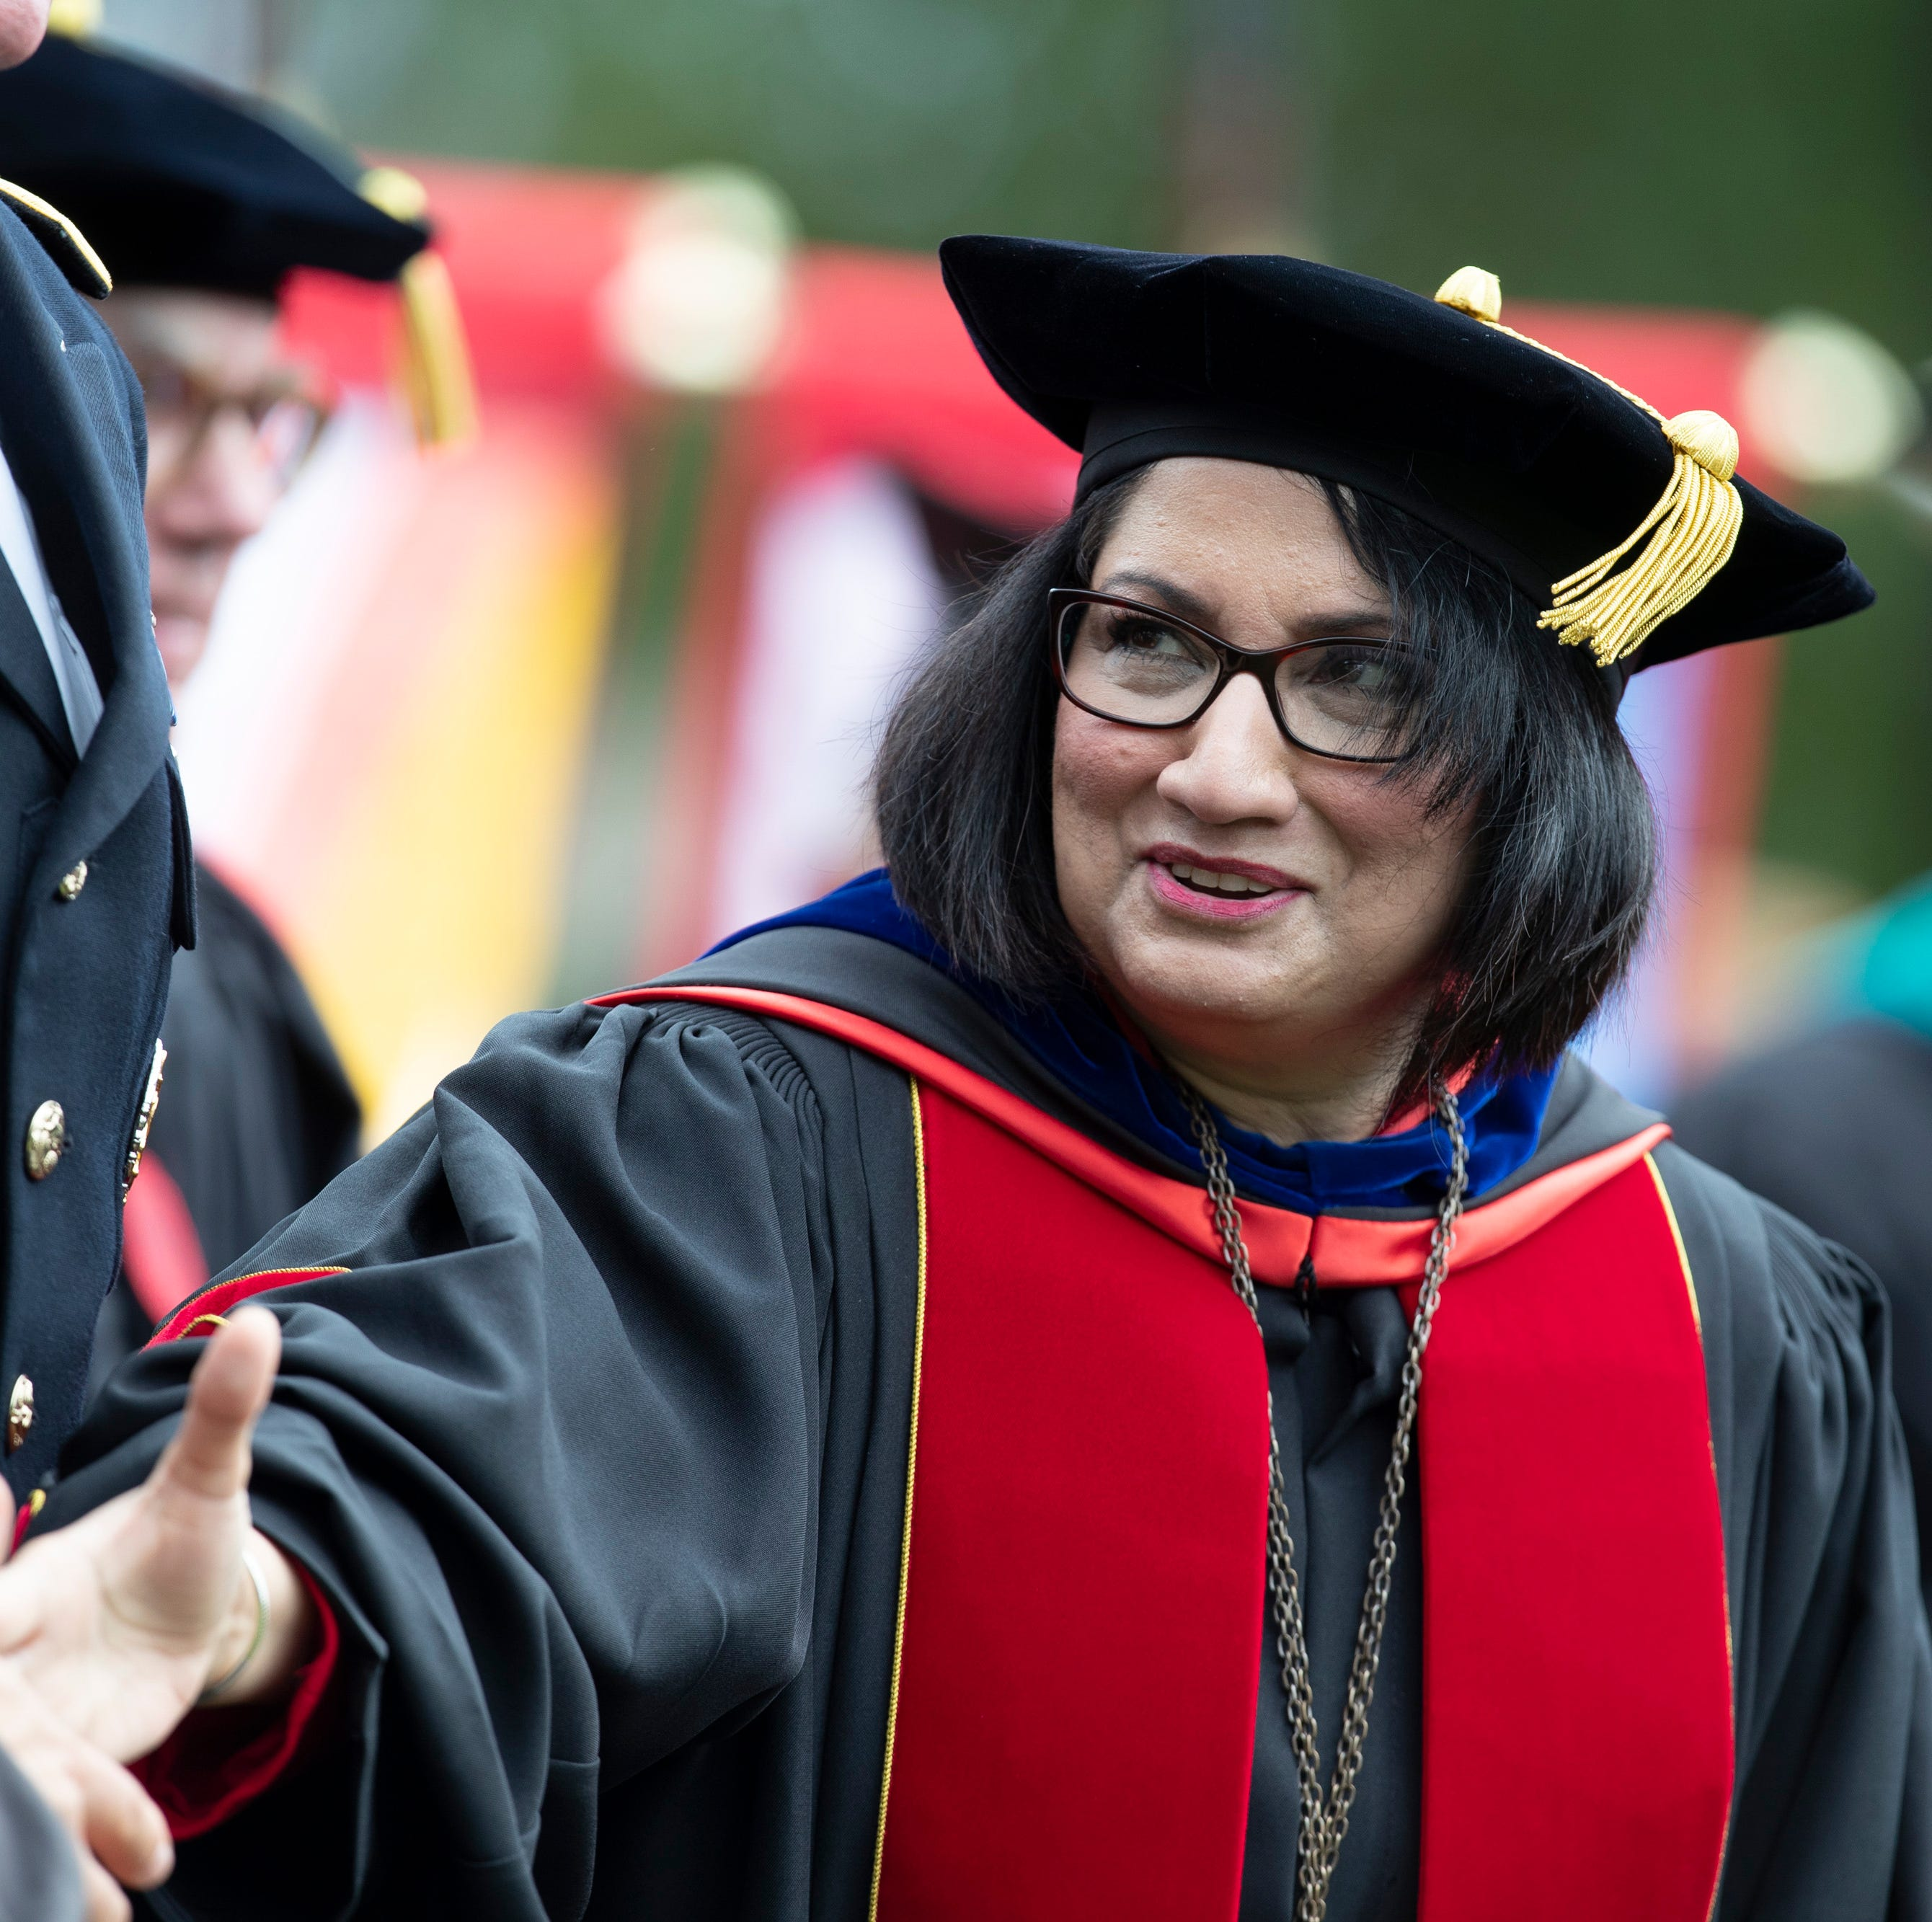 University of Louisville President Neeli Bendapudi gets major raise after 'A++' first year